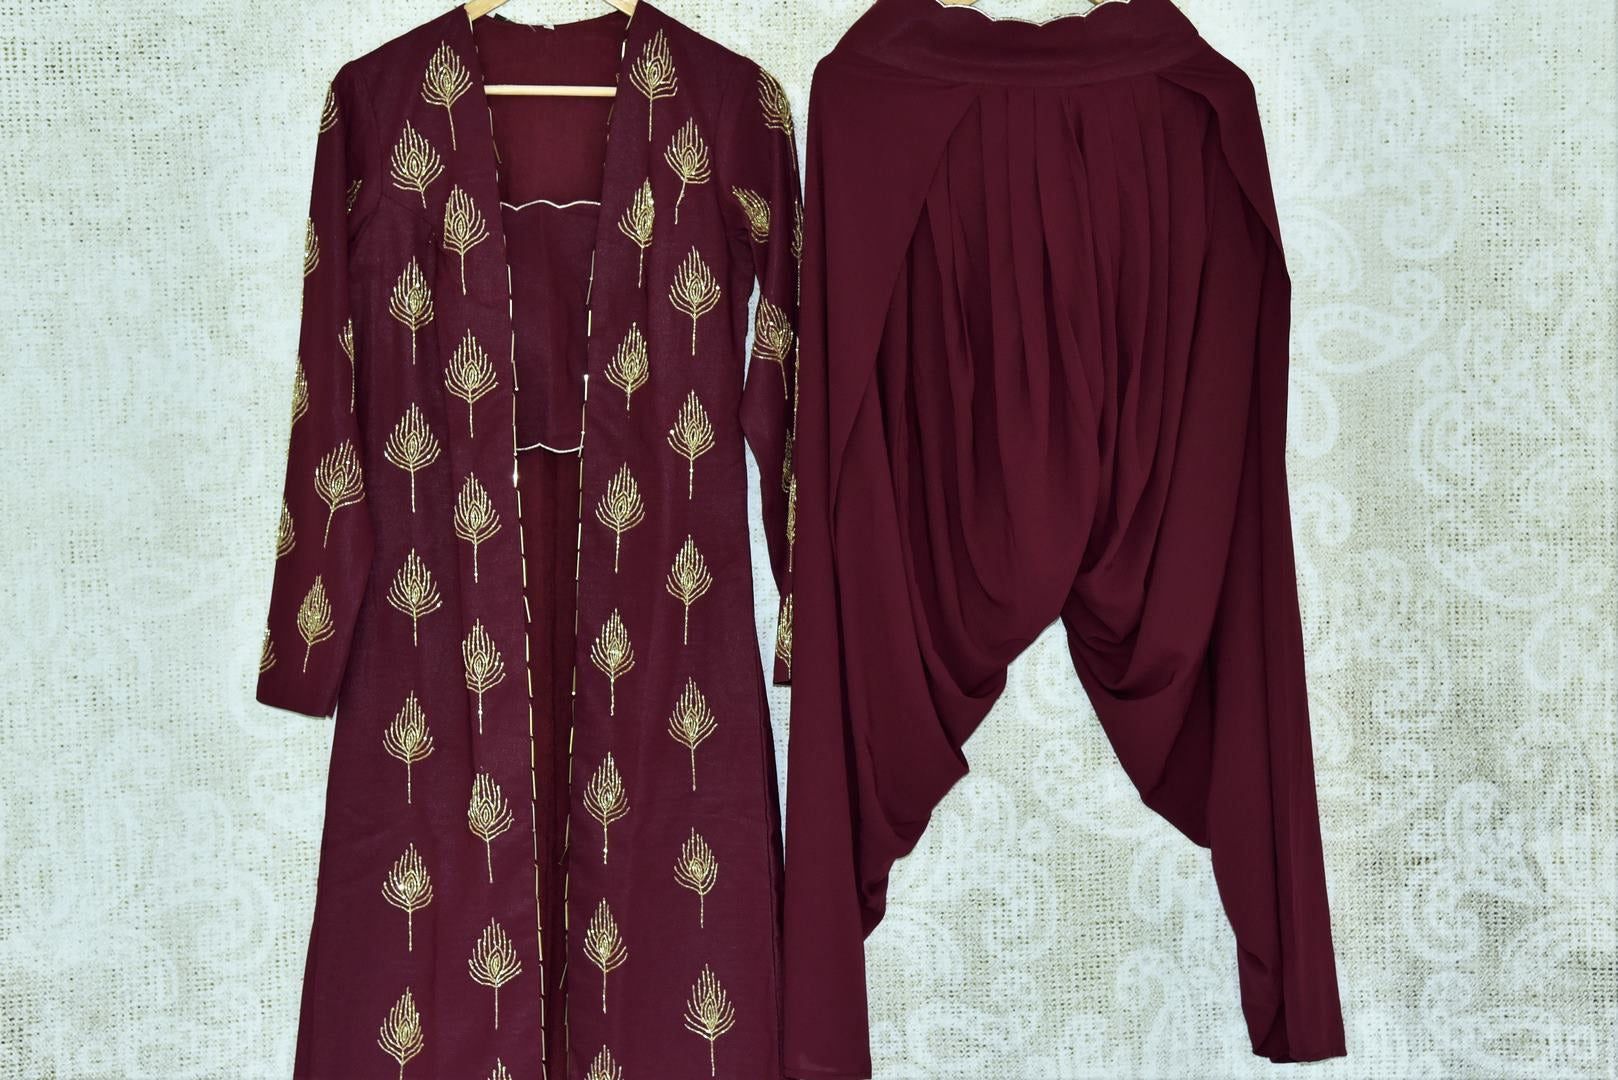 Buy wine color georgette suit with hand embroidery online in USA. If you are fond of Indian fashion then you must visit Pure Elegance Indian clothing store in USA. We have a splendid collection of Indian designer dresses, Indowestern dresses and clothing here for you on our shelves. -full view